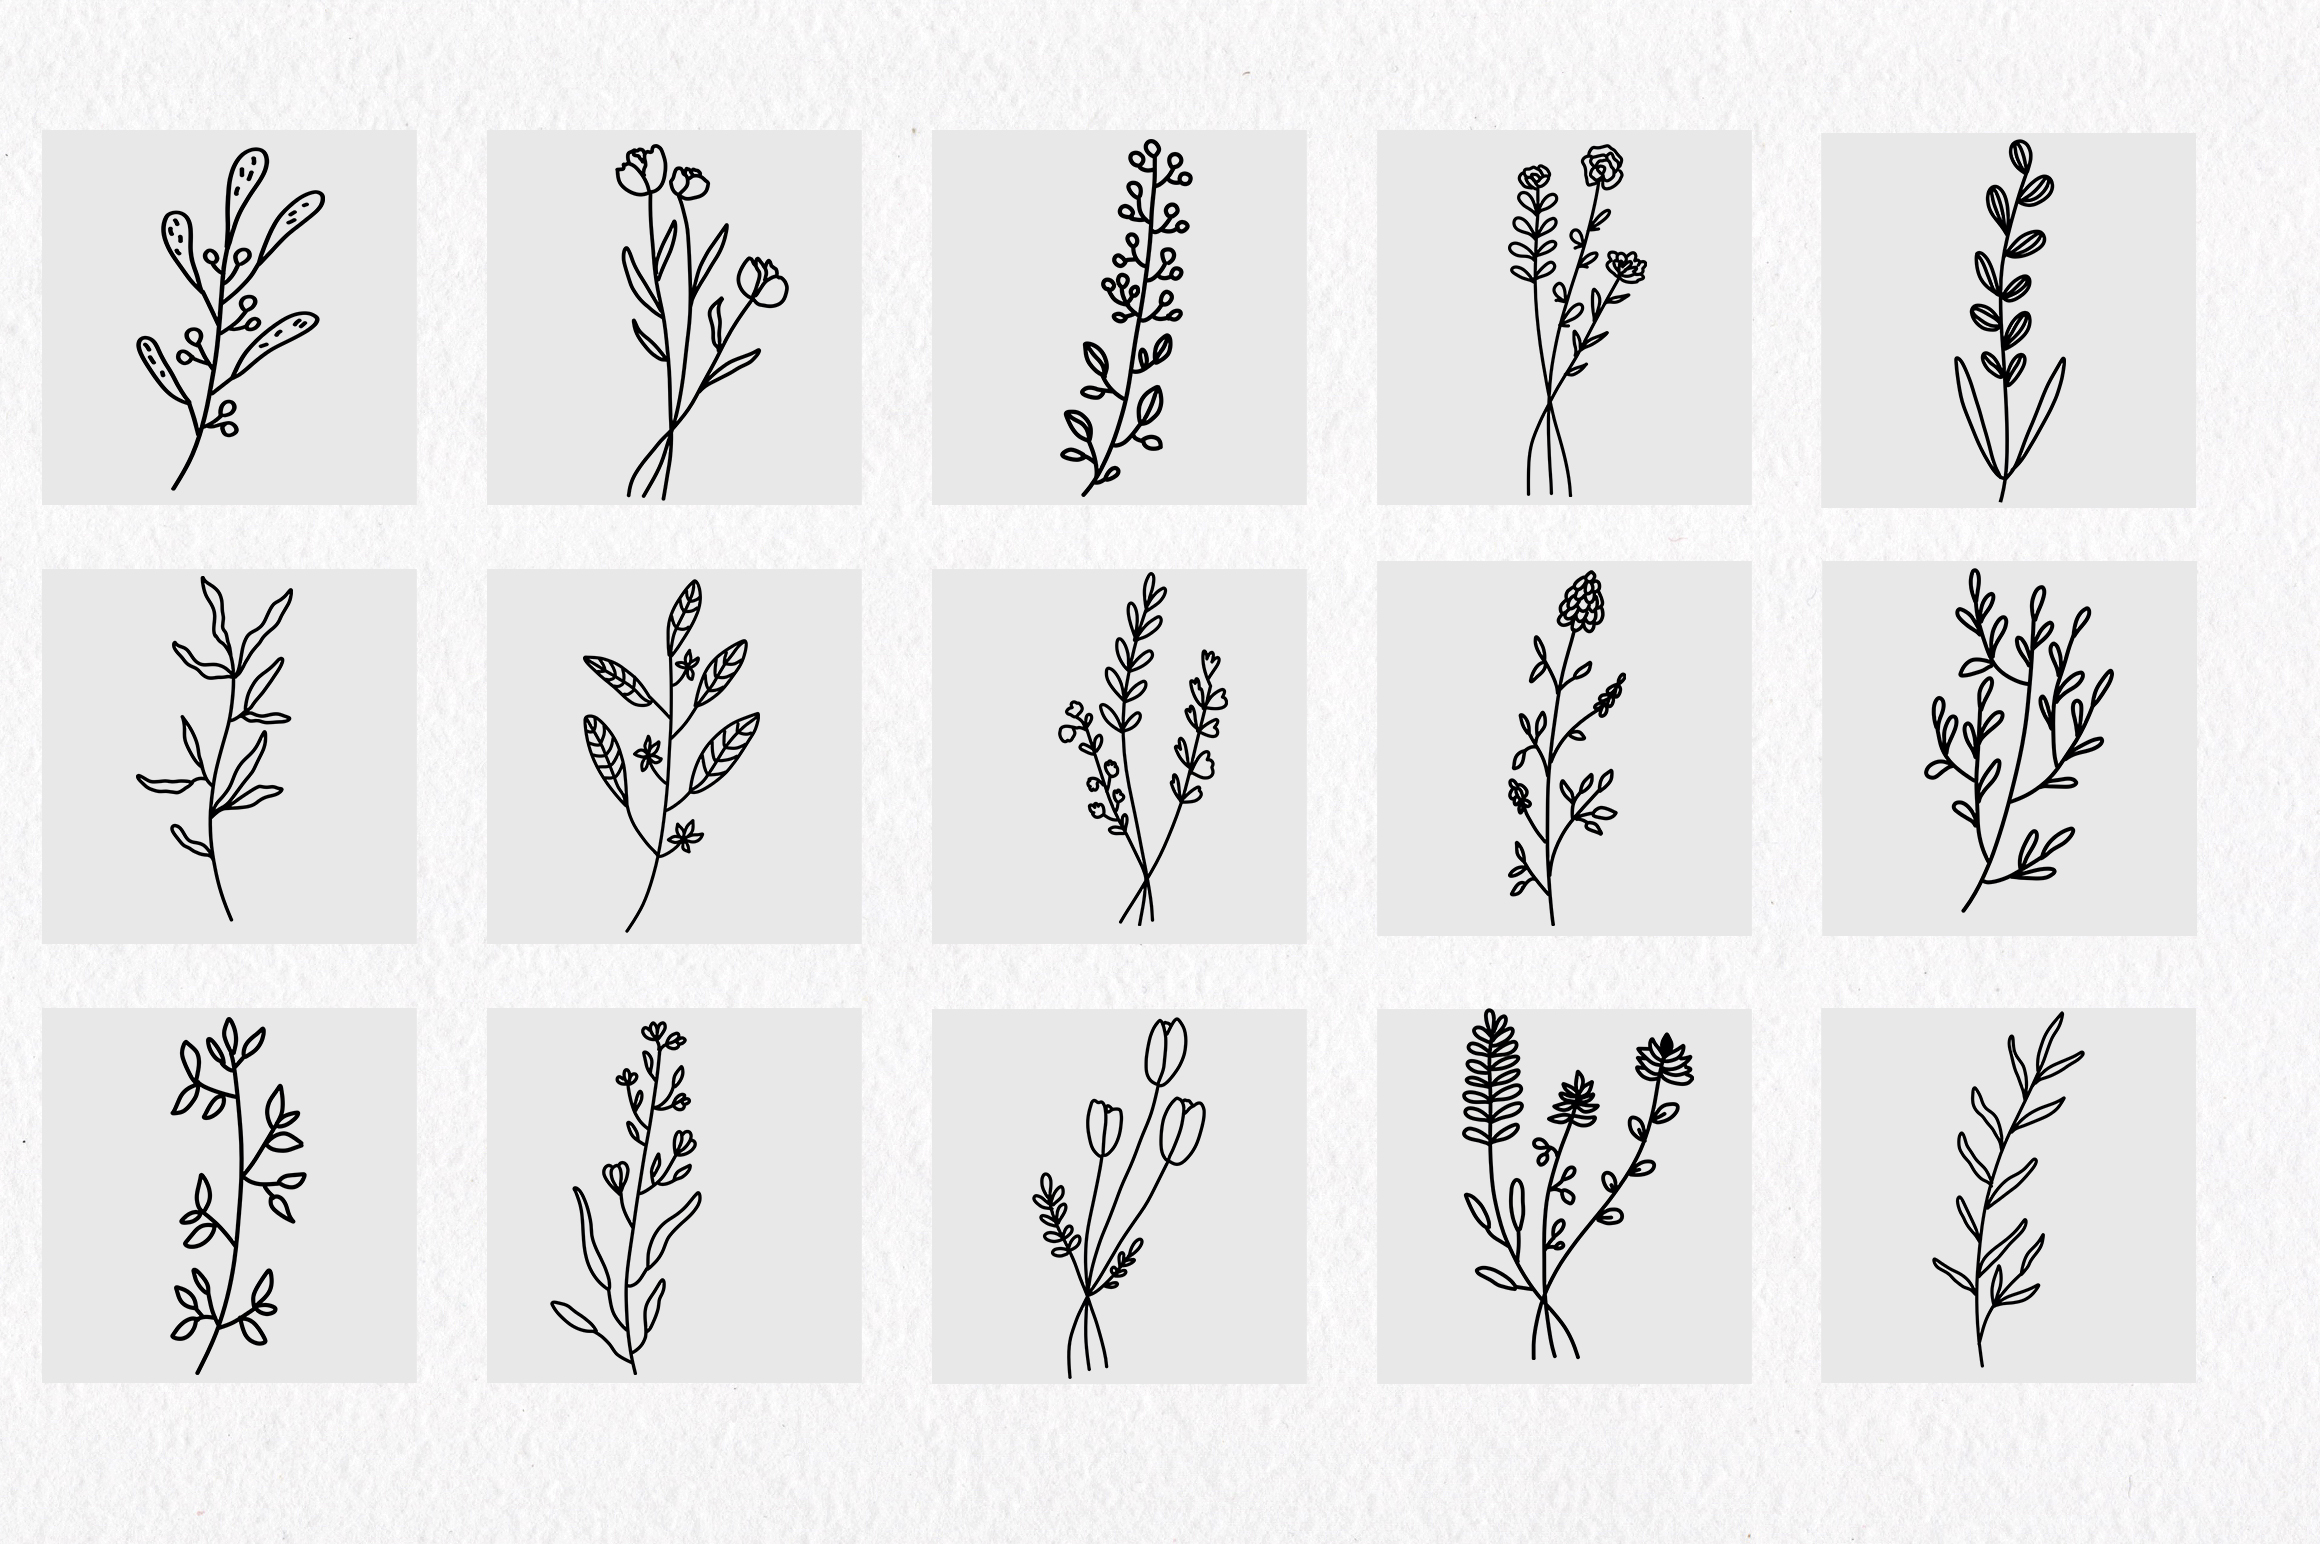 Floral and herbal elements. Hand drawn botanical art. example image 4